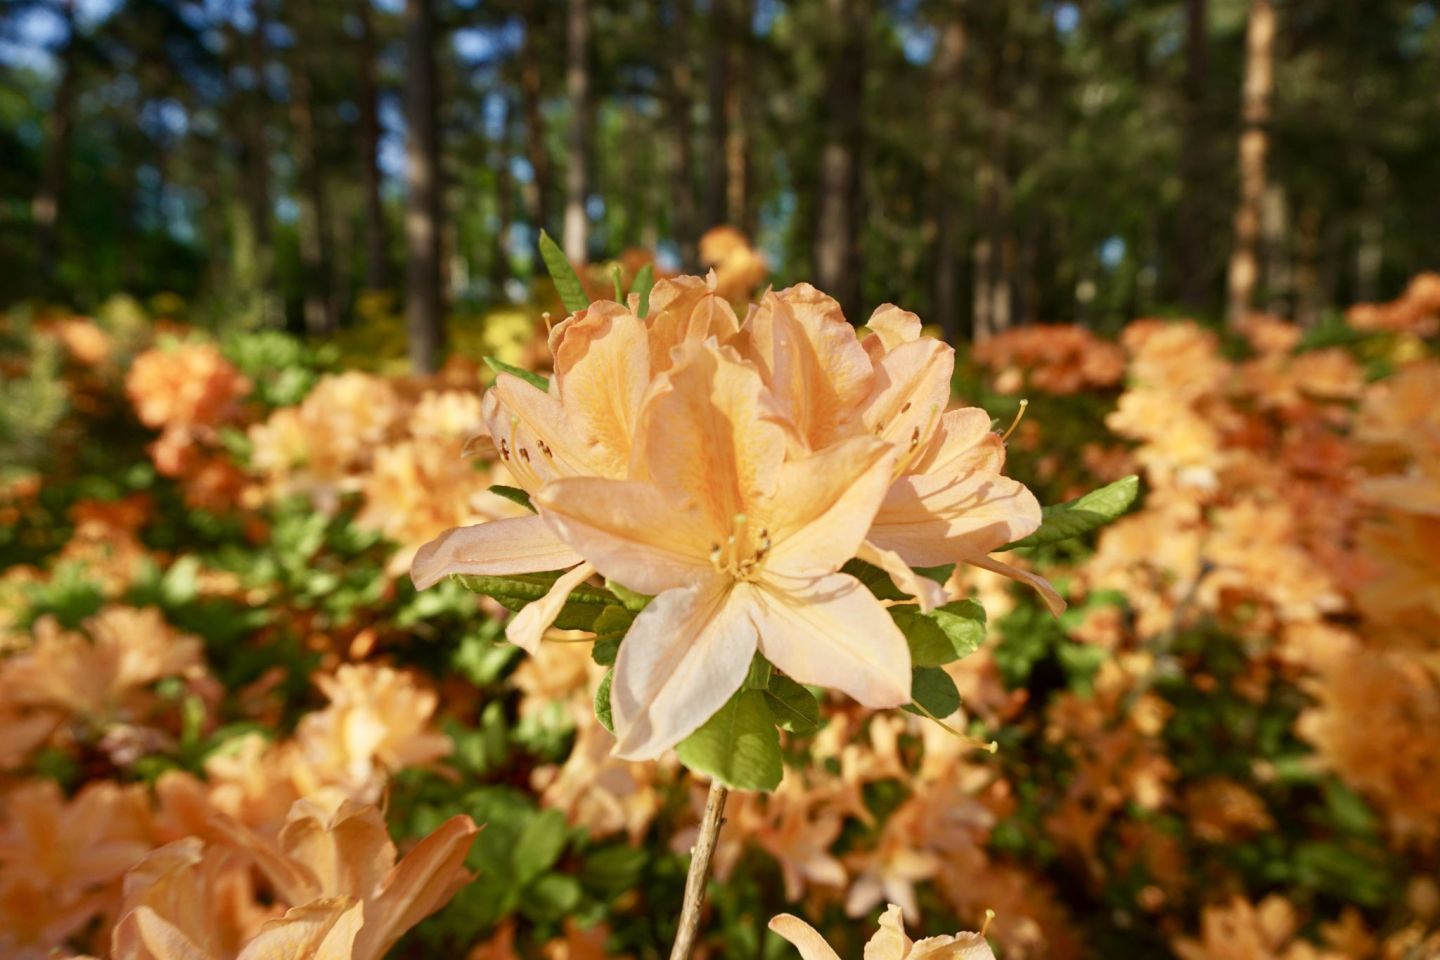 Thousands of rhododendrons and azaleas in full bloom in Alppiruusupuisto